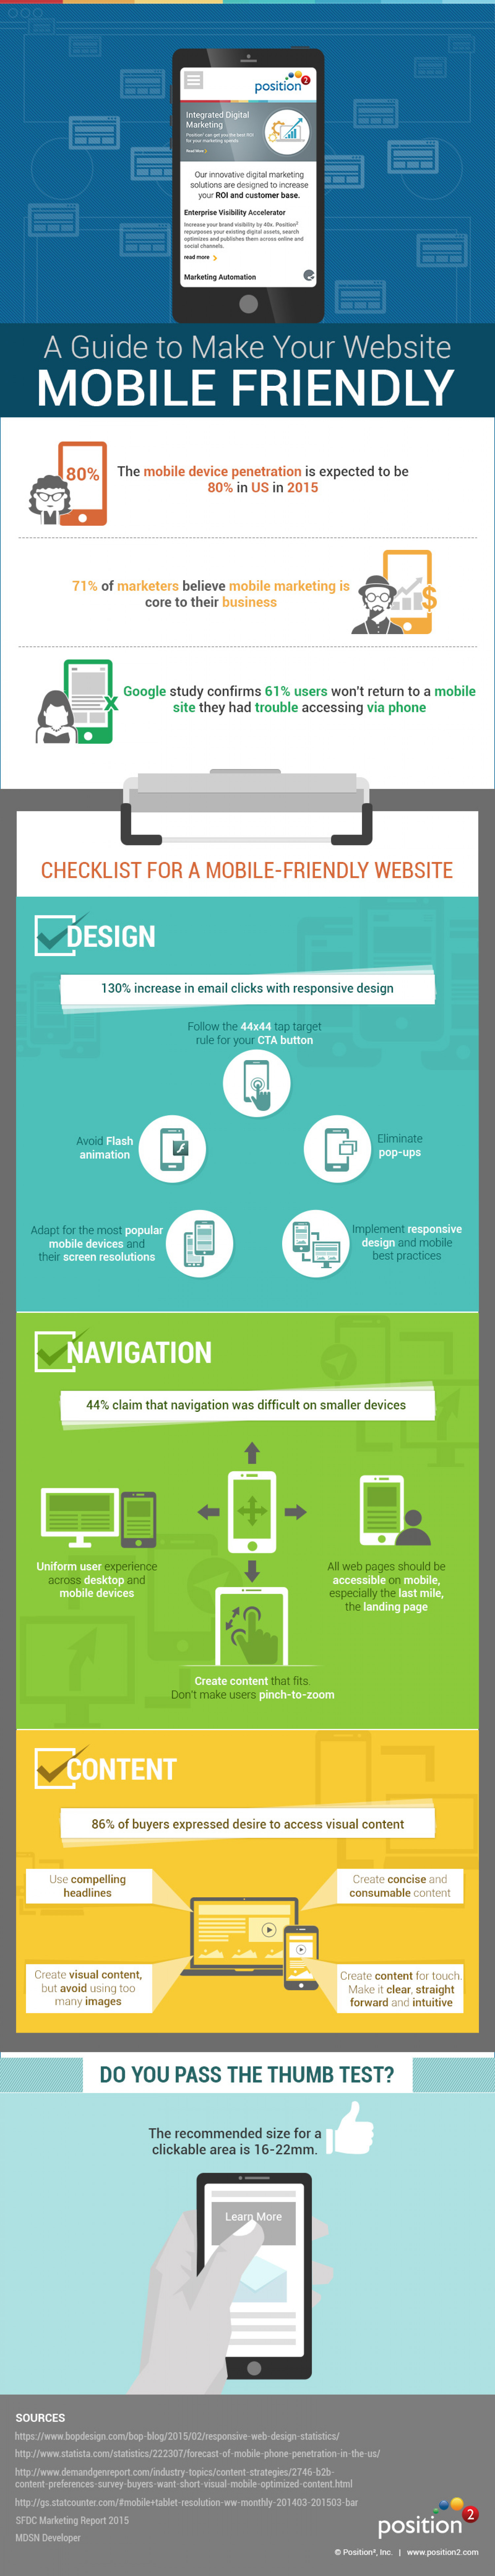 An Infographic Guide to Optimize Your Website for Mobile | Position2 Infographic